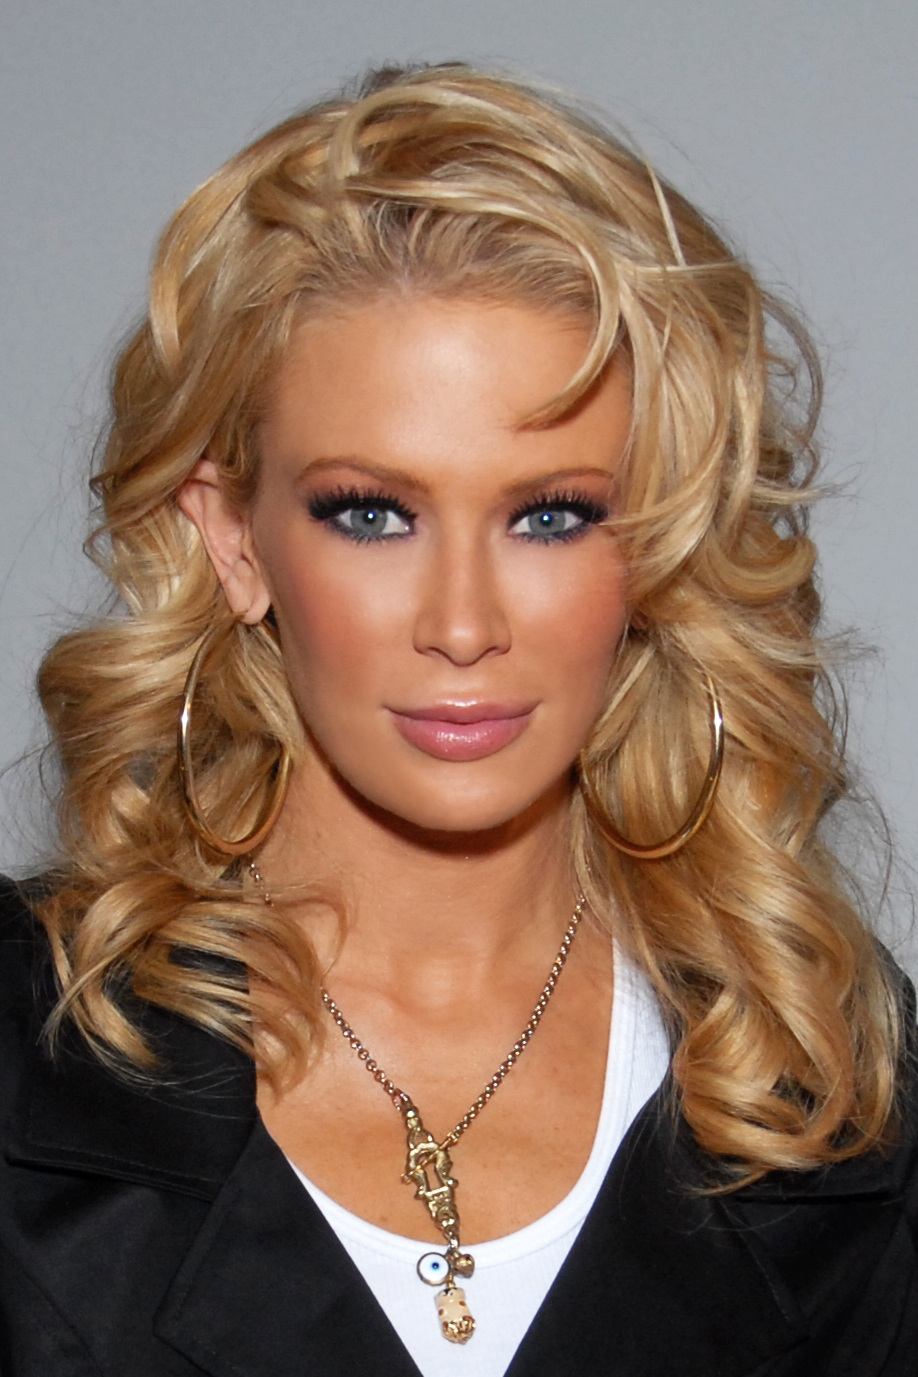 Jenna jameson wikipedia-8329